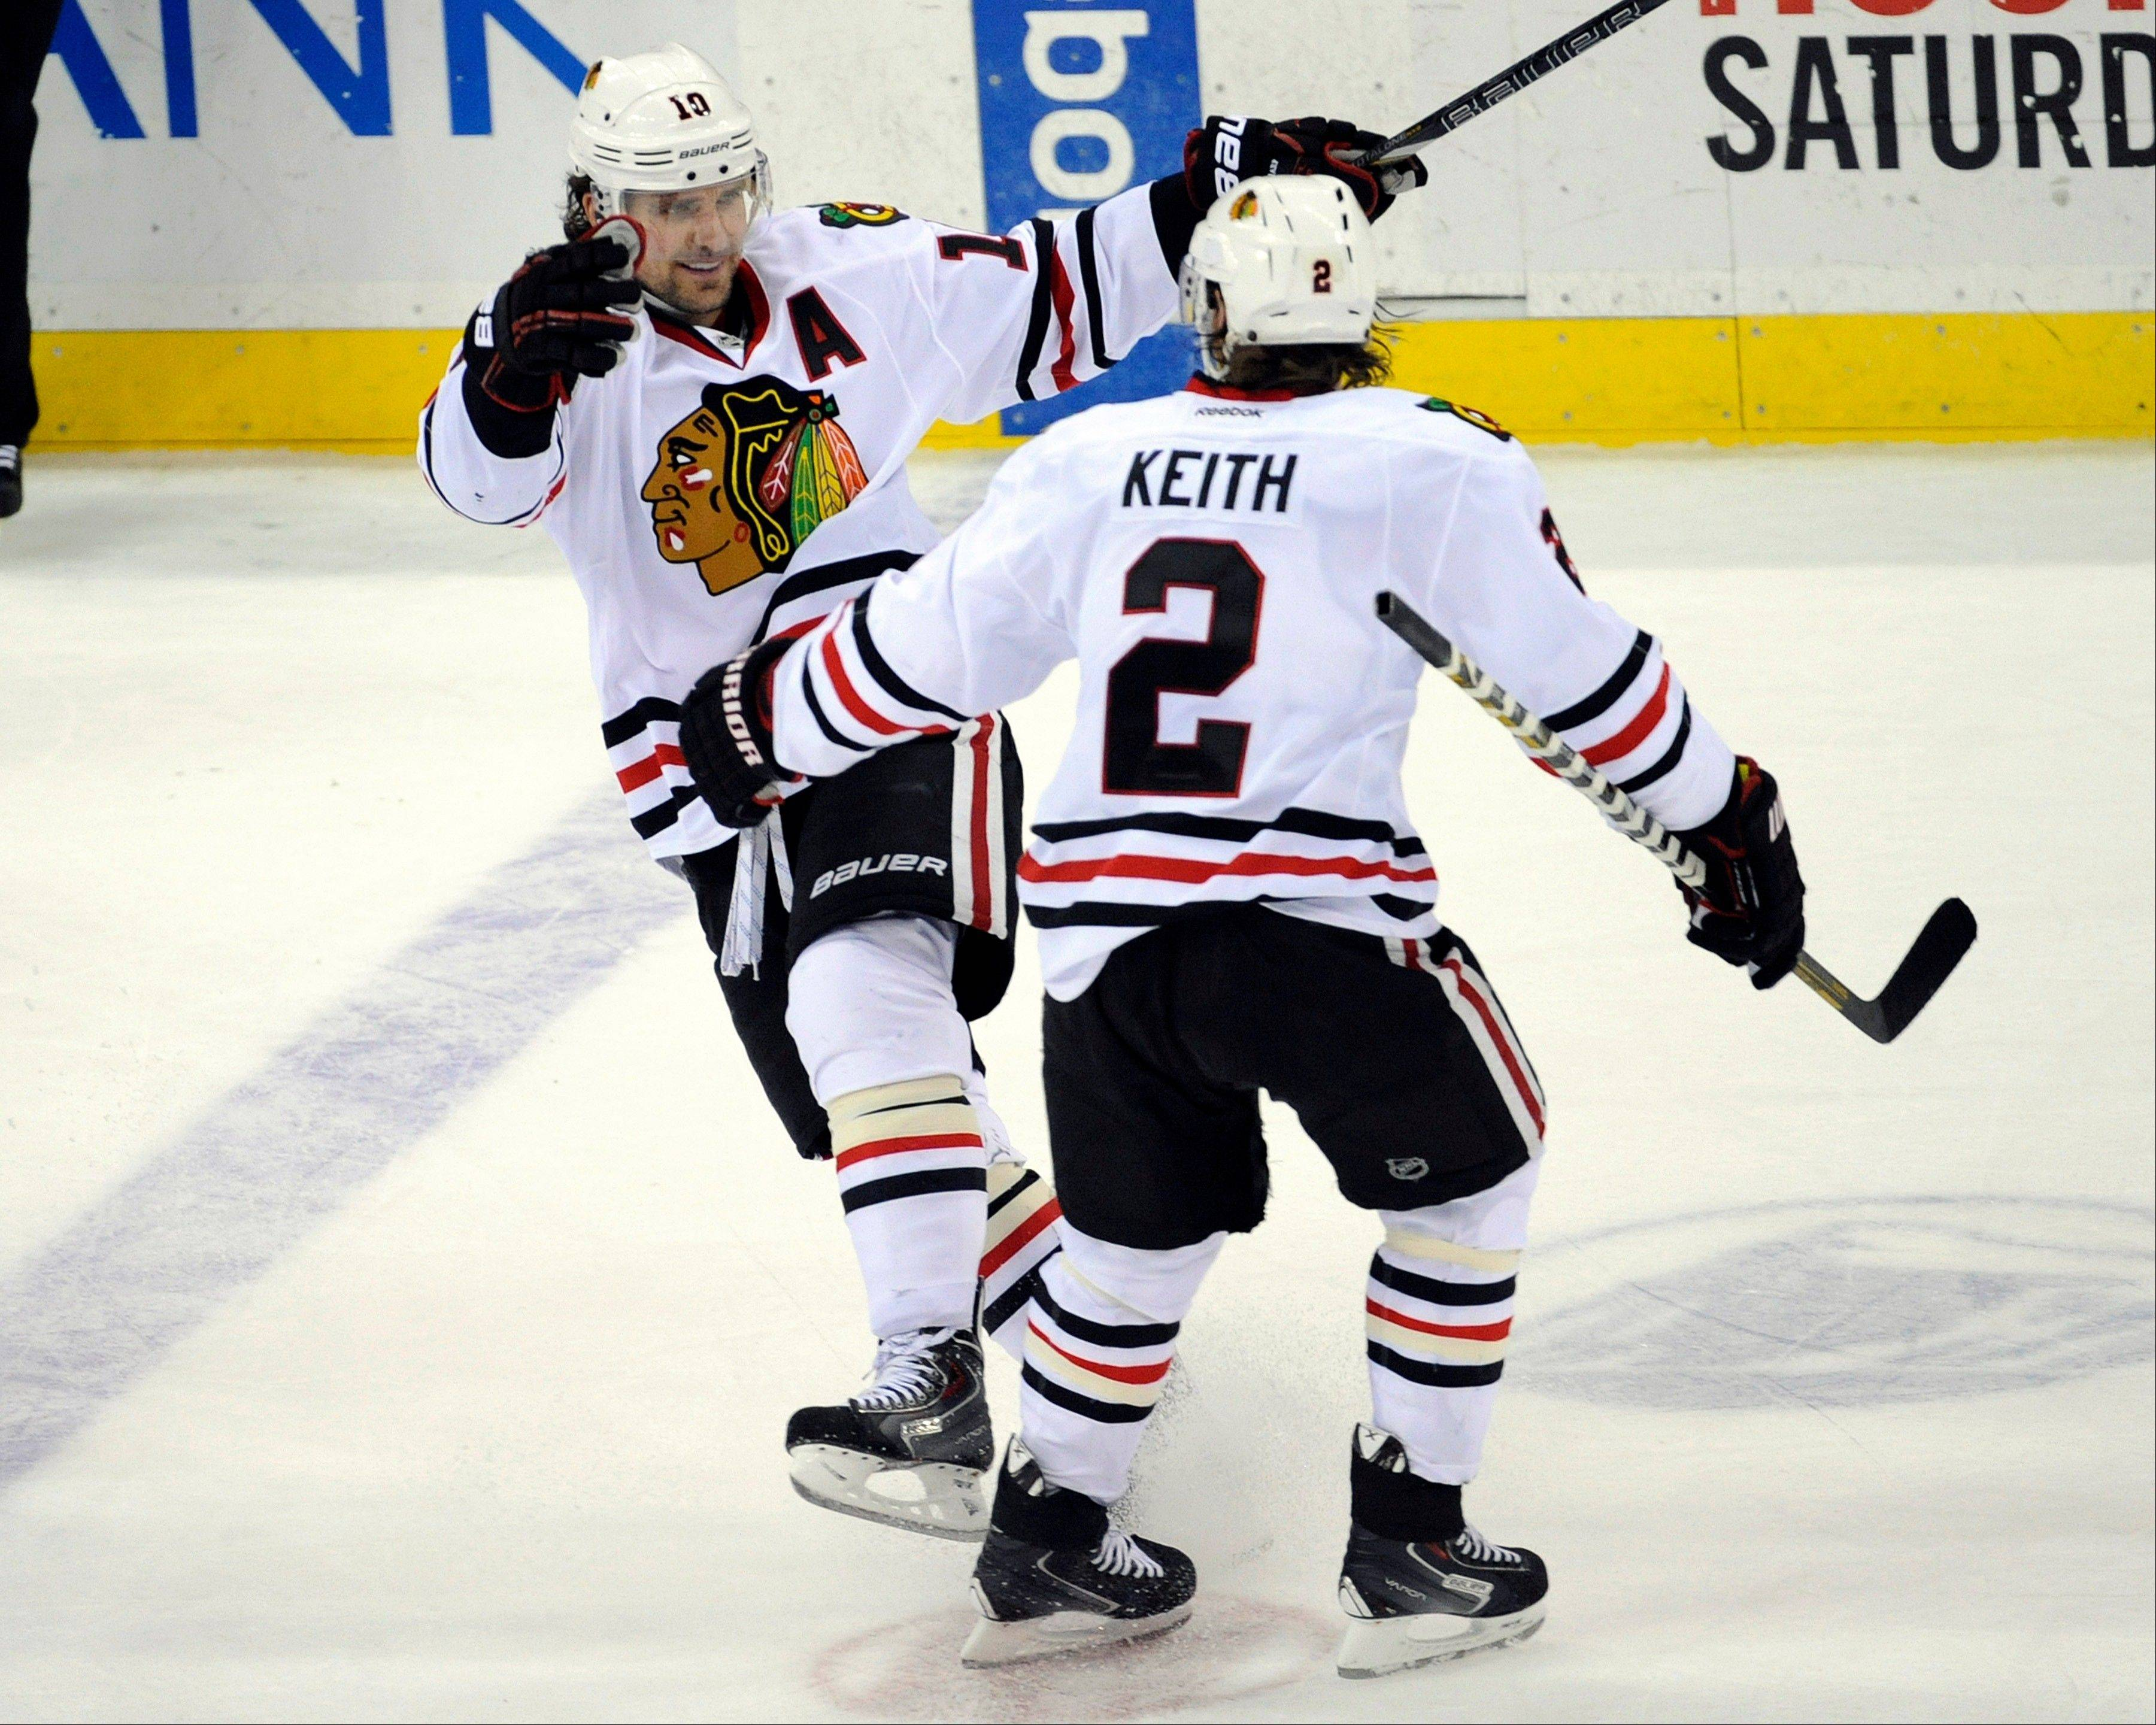 Patrick Sharp celebrates his hat trick with Duncan Keith (2) during the third period of an NHL hockey game against the New Jersey Devils, Friday, Jan. 3, 2014, in Newark, N.J. The Blackhawks won 5-3.